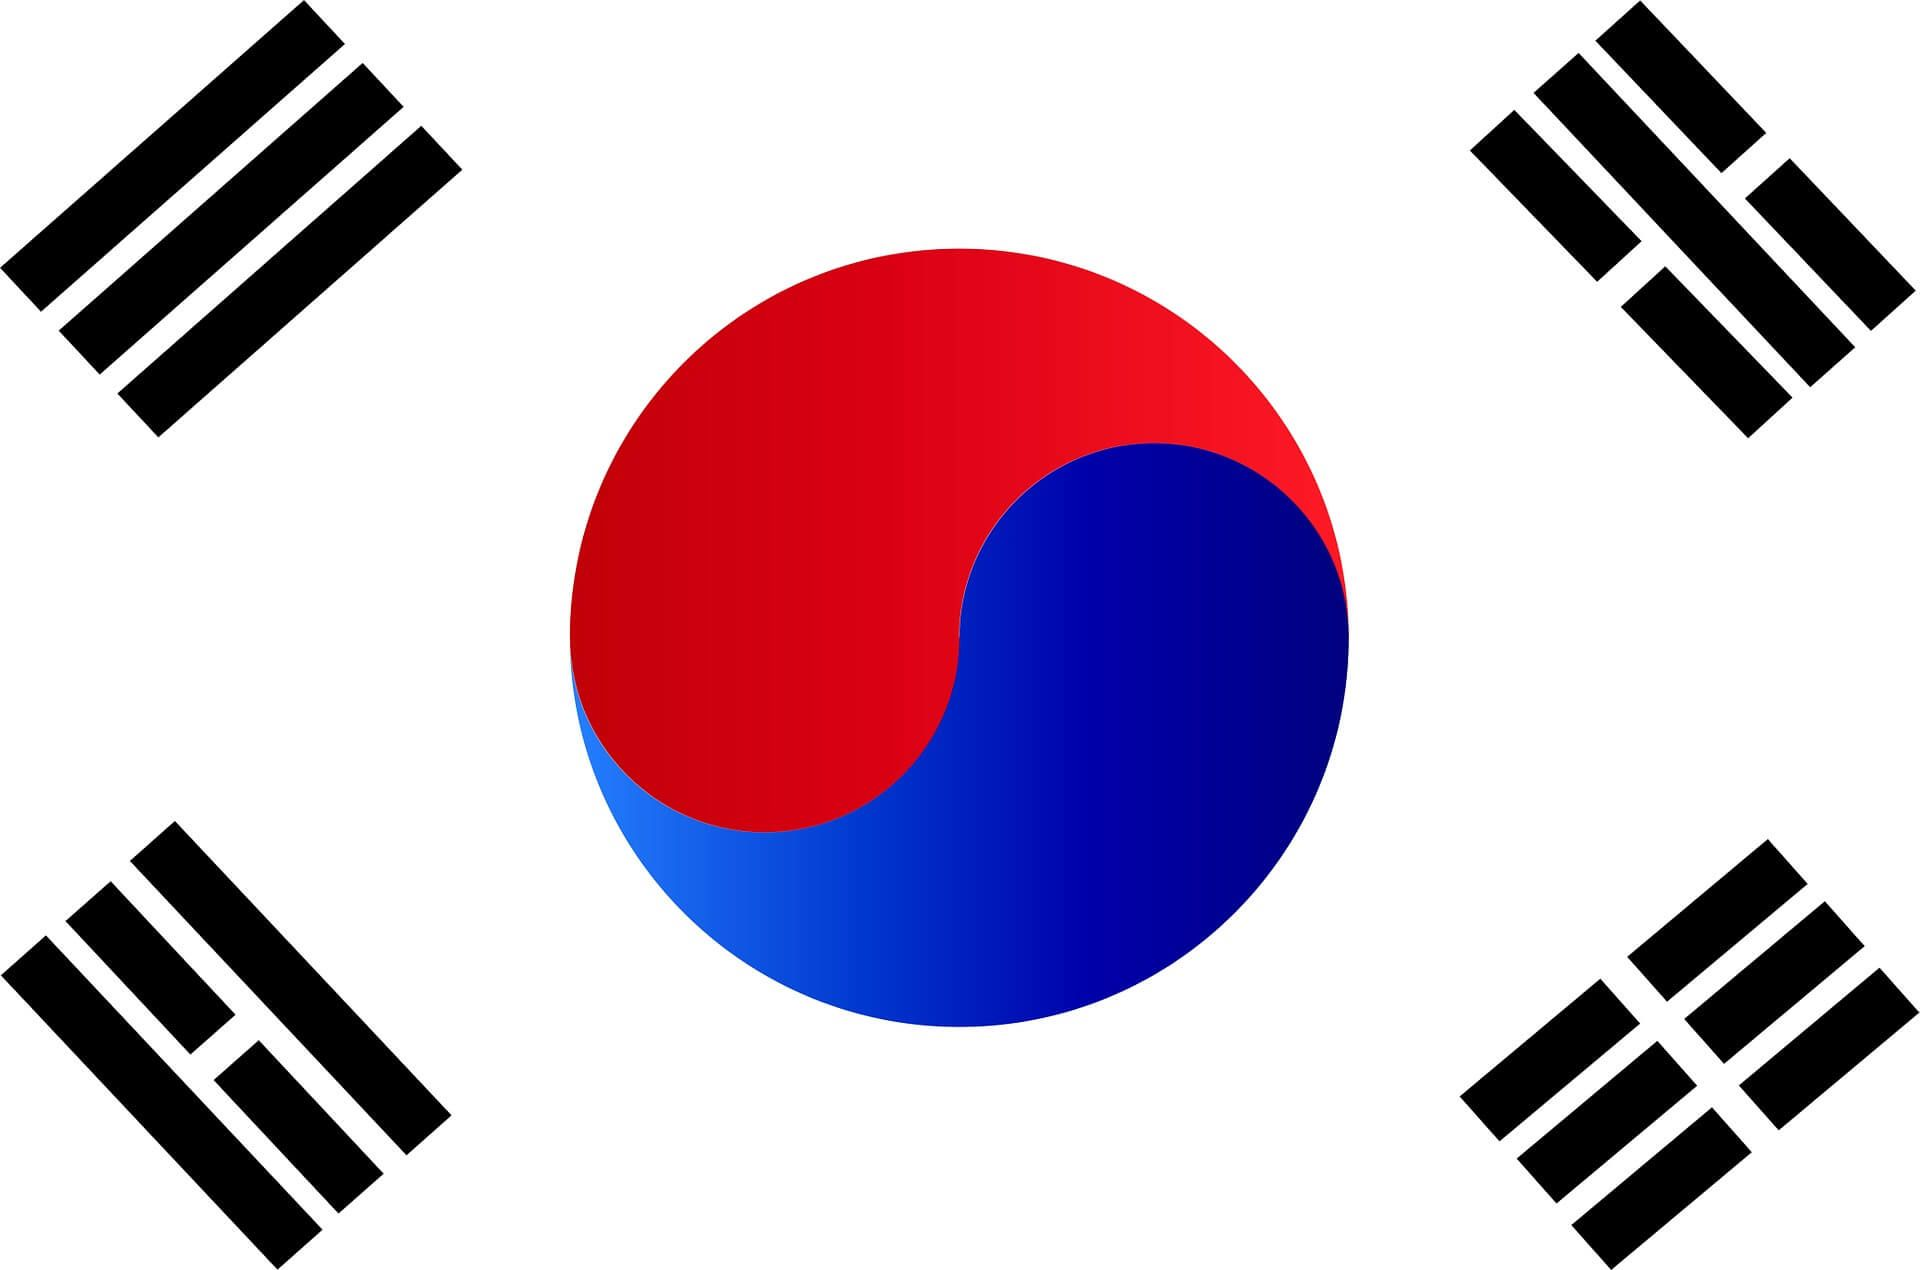 South Korea Flag Picture Jpg Yahoo Image Search Results Judith Pinterest South Korea And